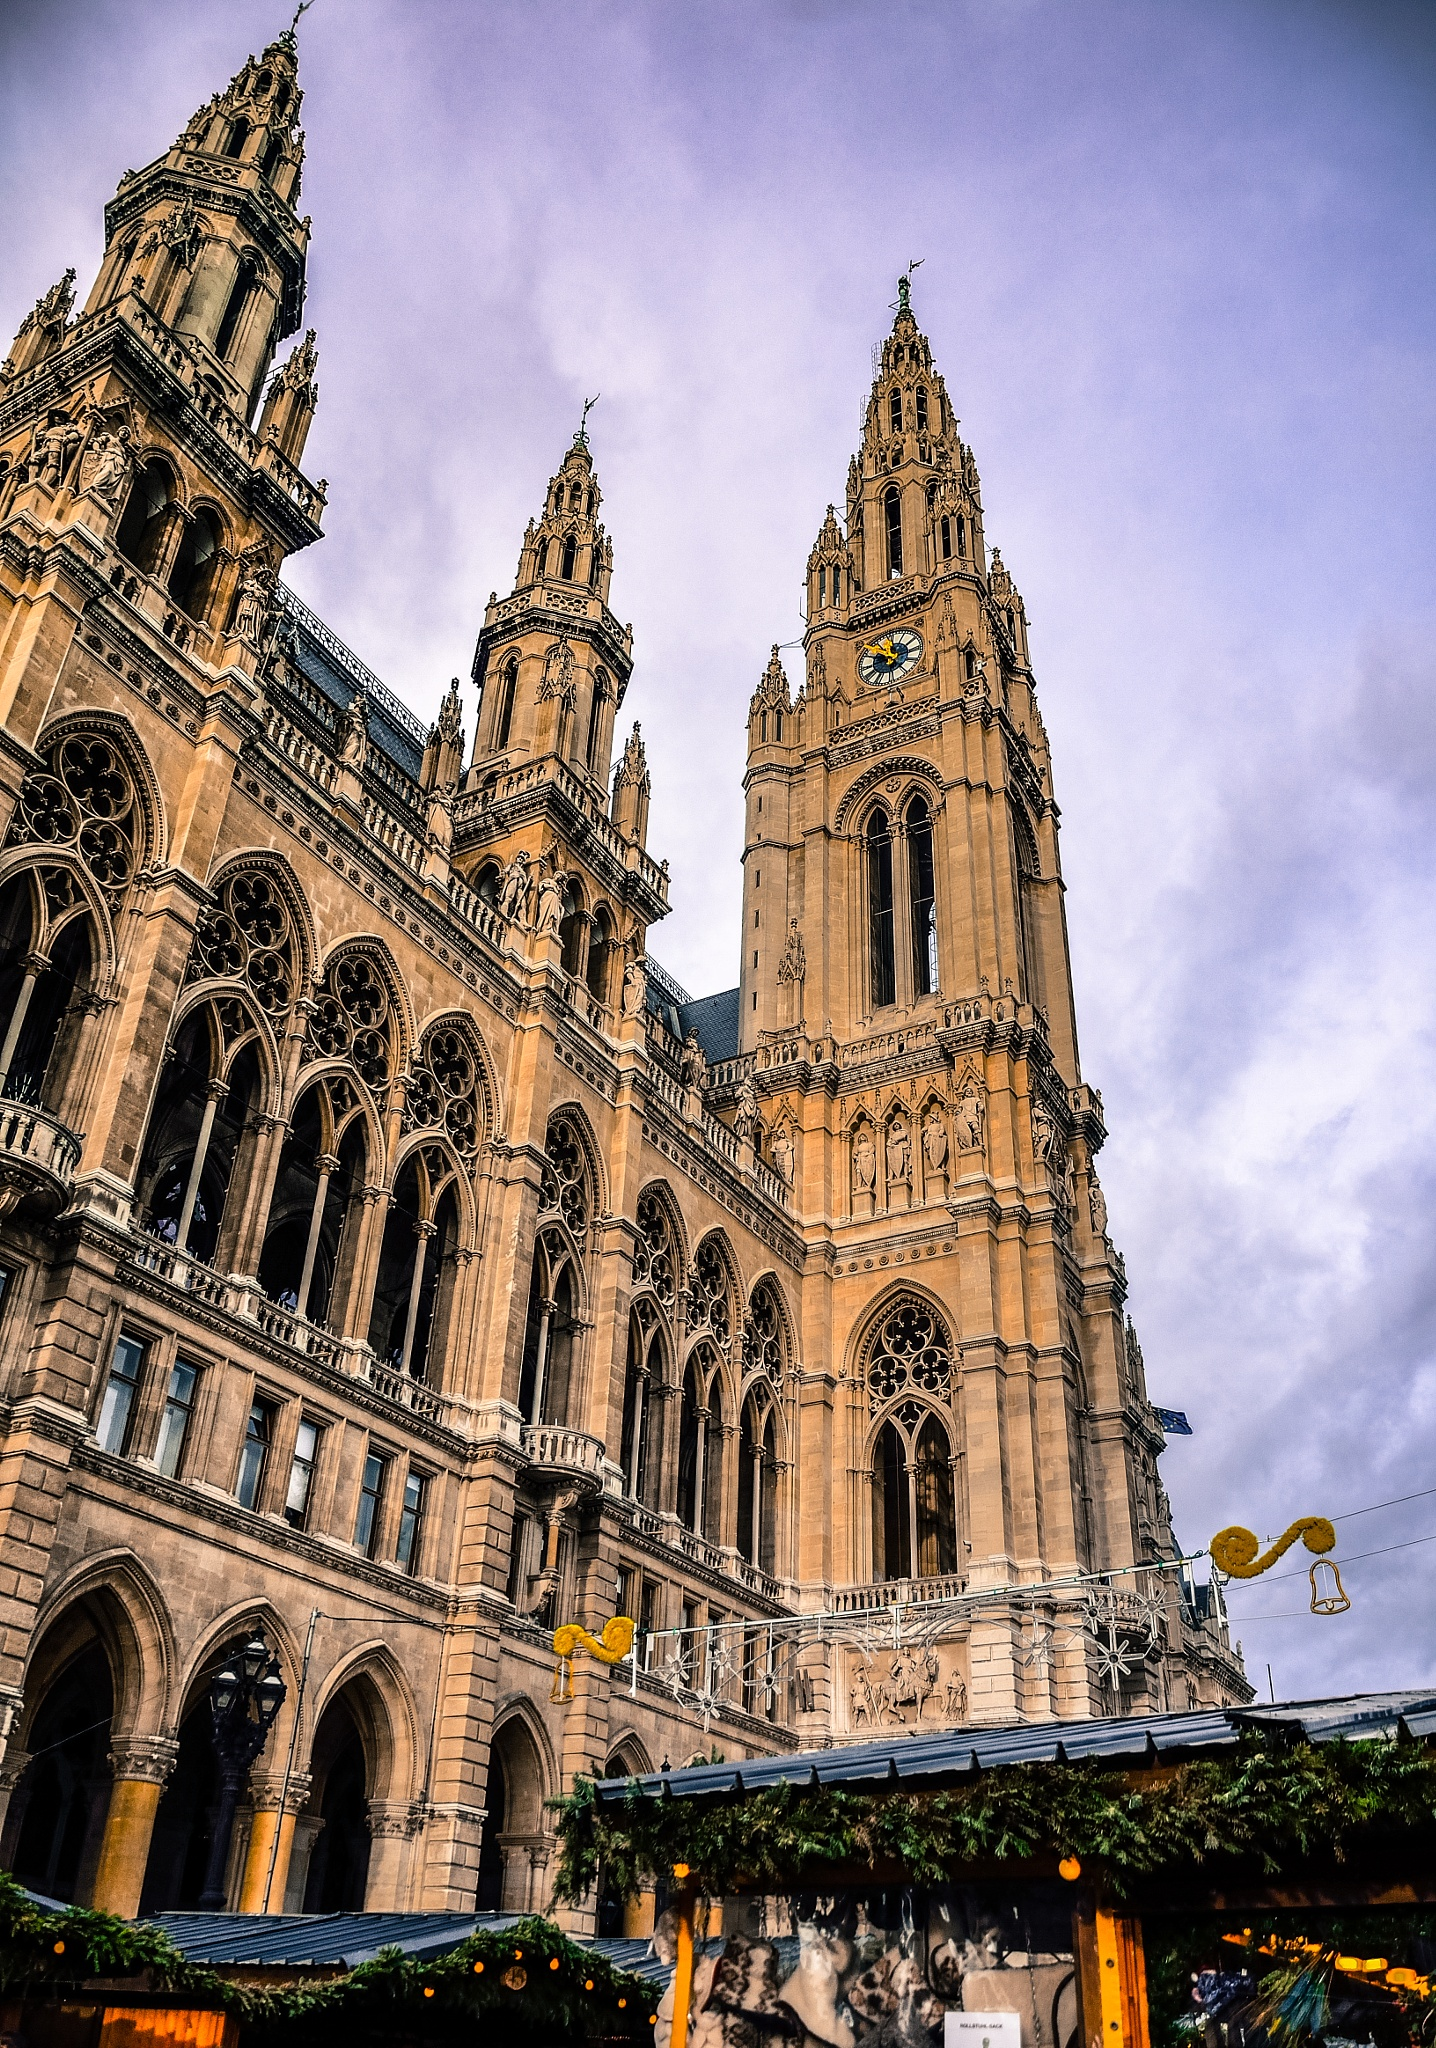 St.Stephen's Catherdral by Laithkhresheh